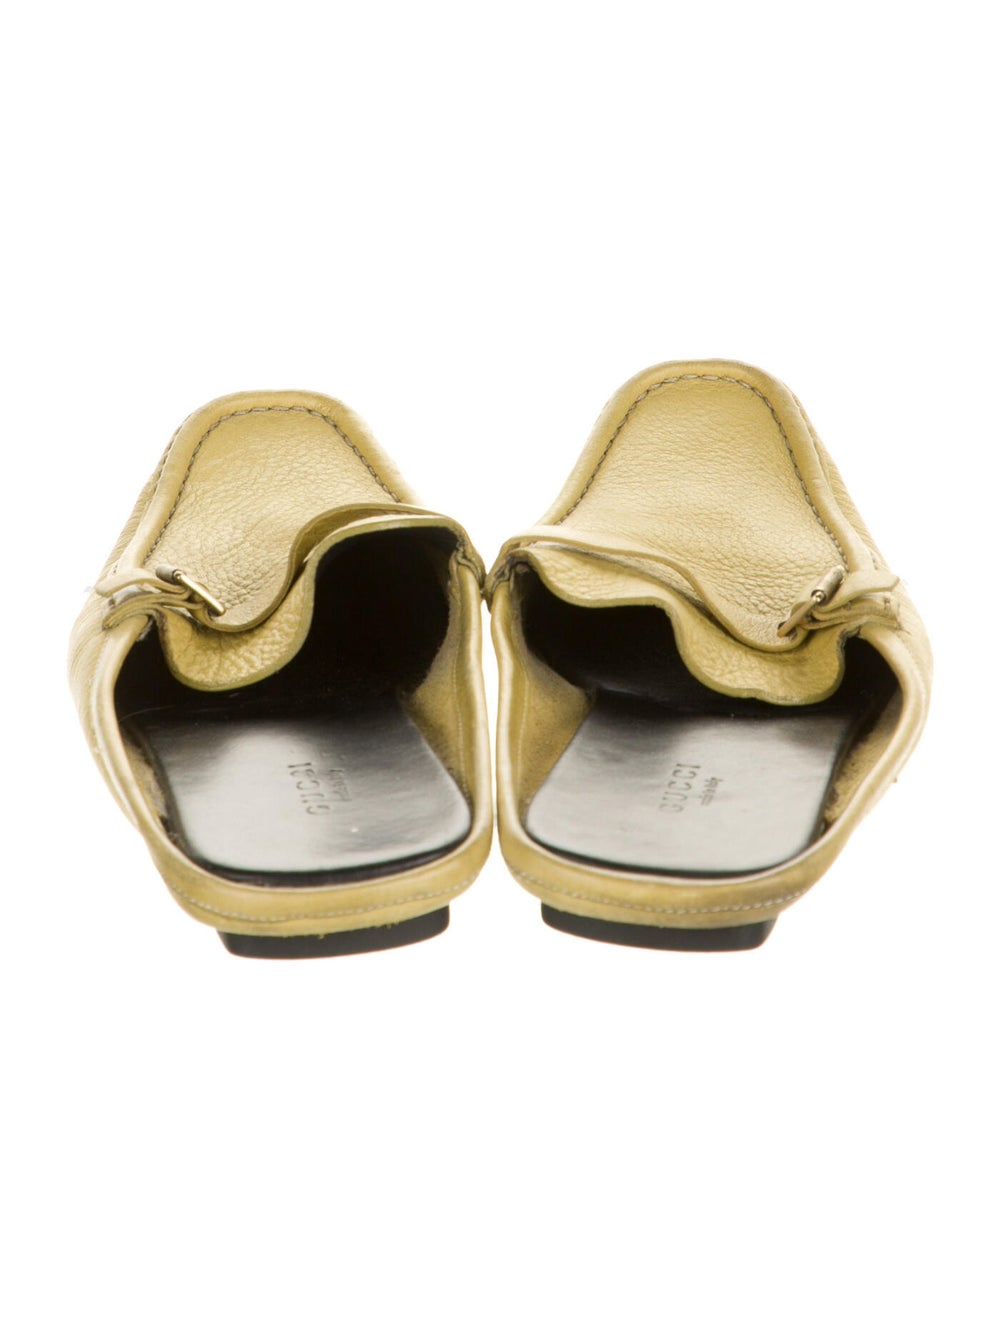 Gucci Leather Mules Yellow - image 4